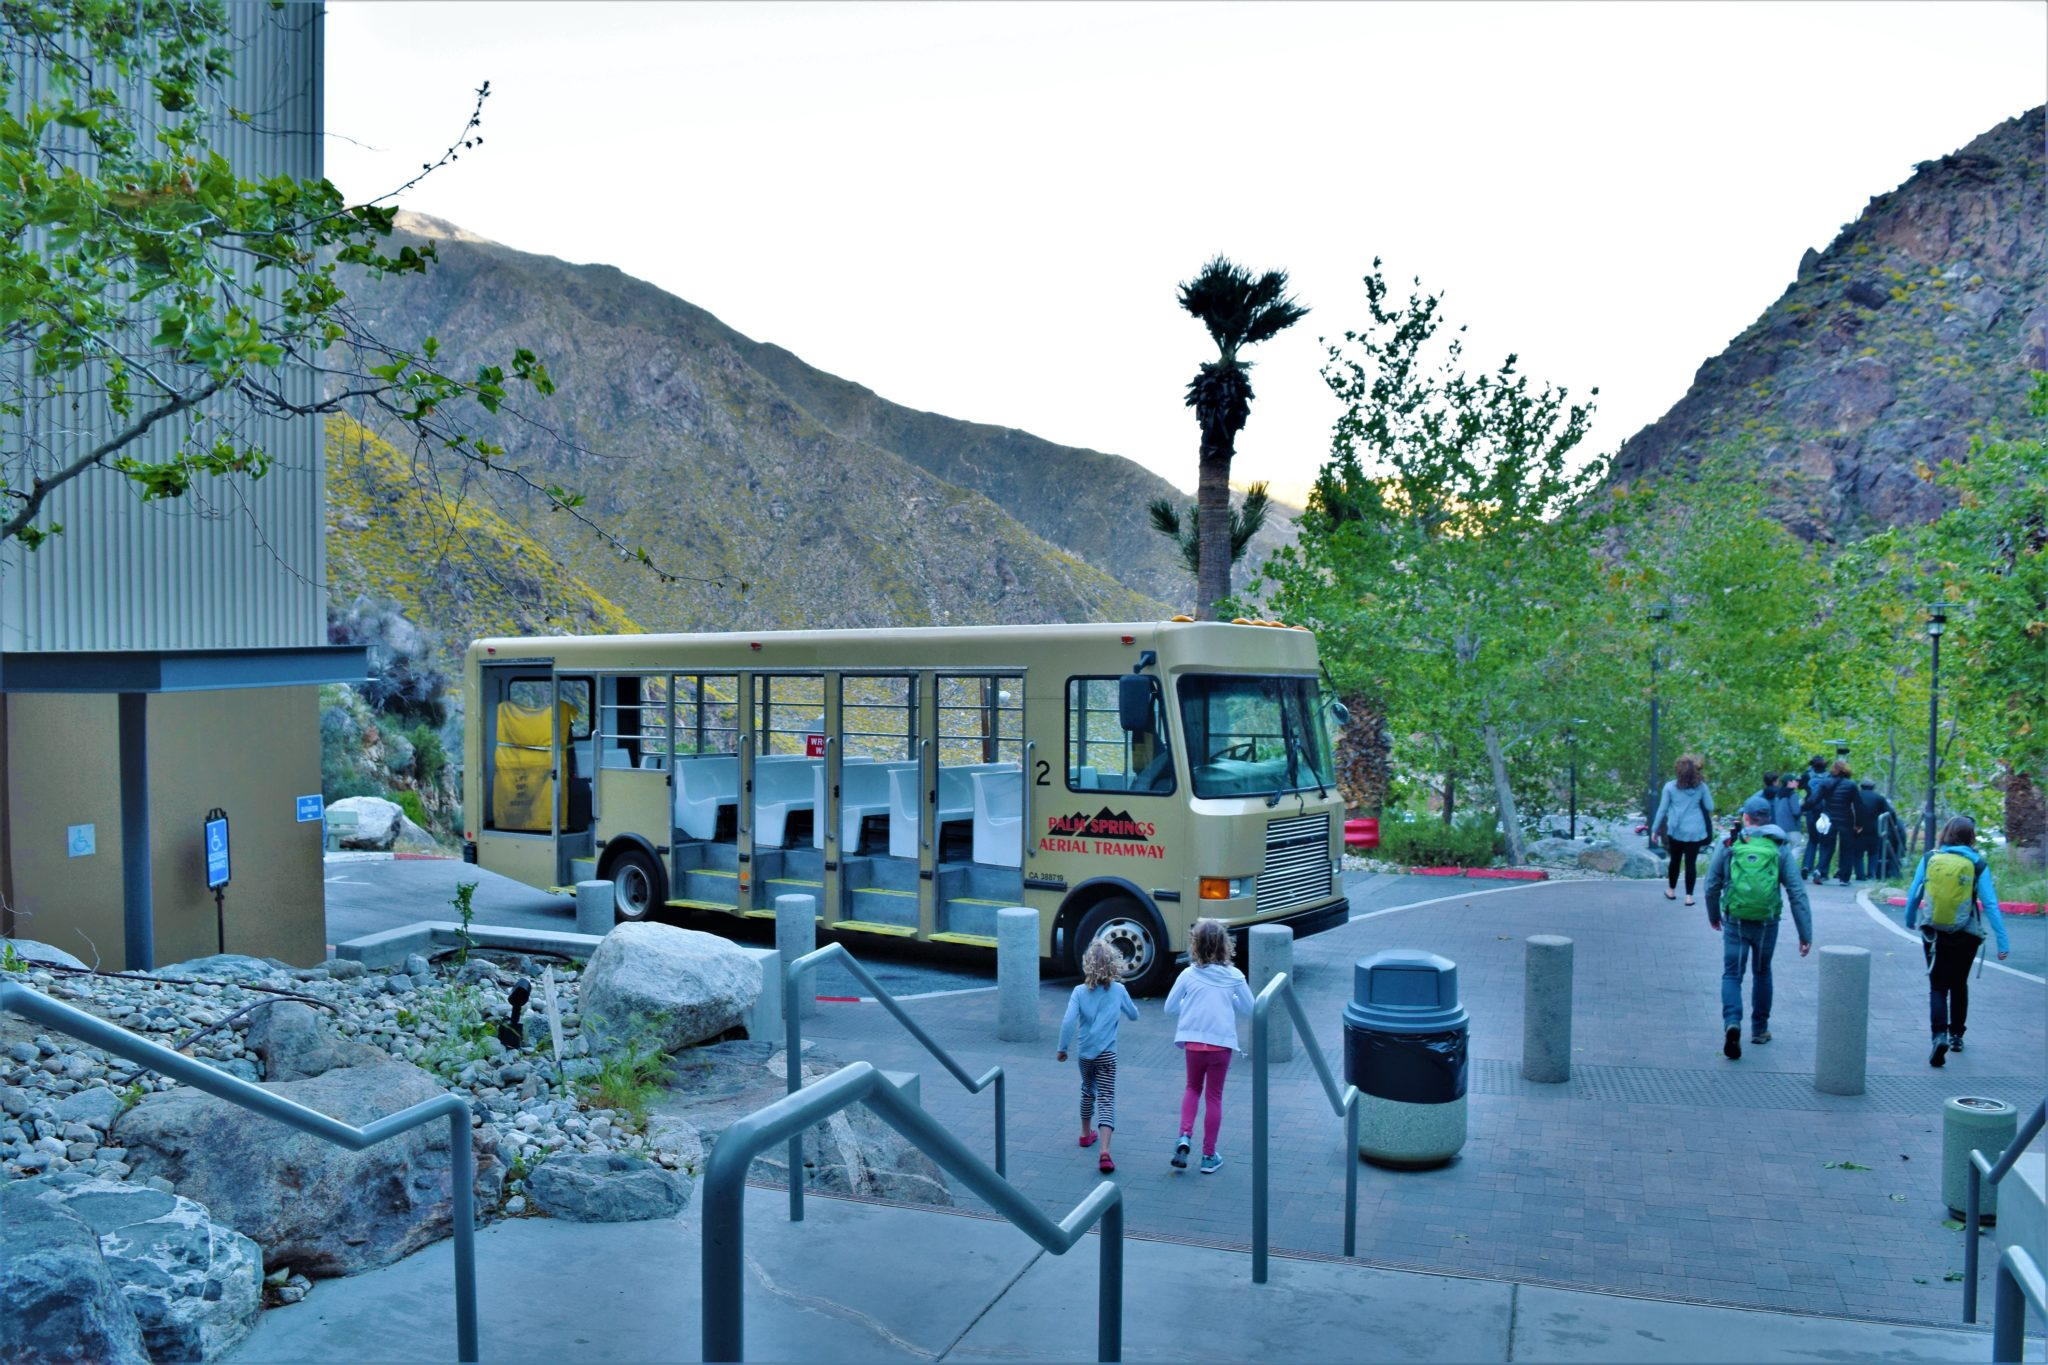 Palm Springs Aerial tramway shuttle, California